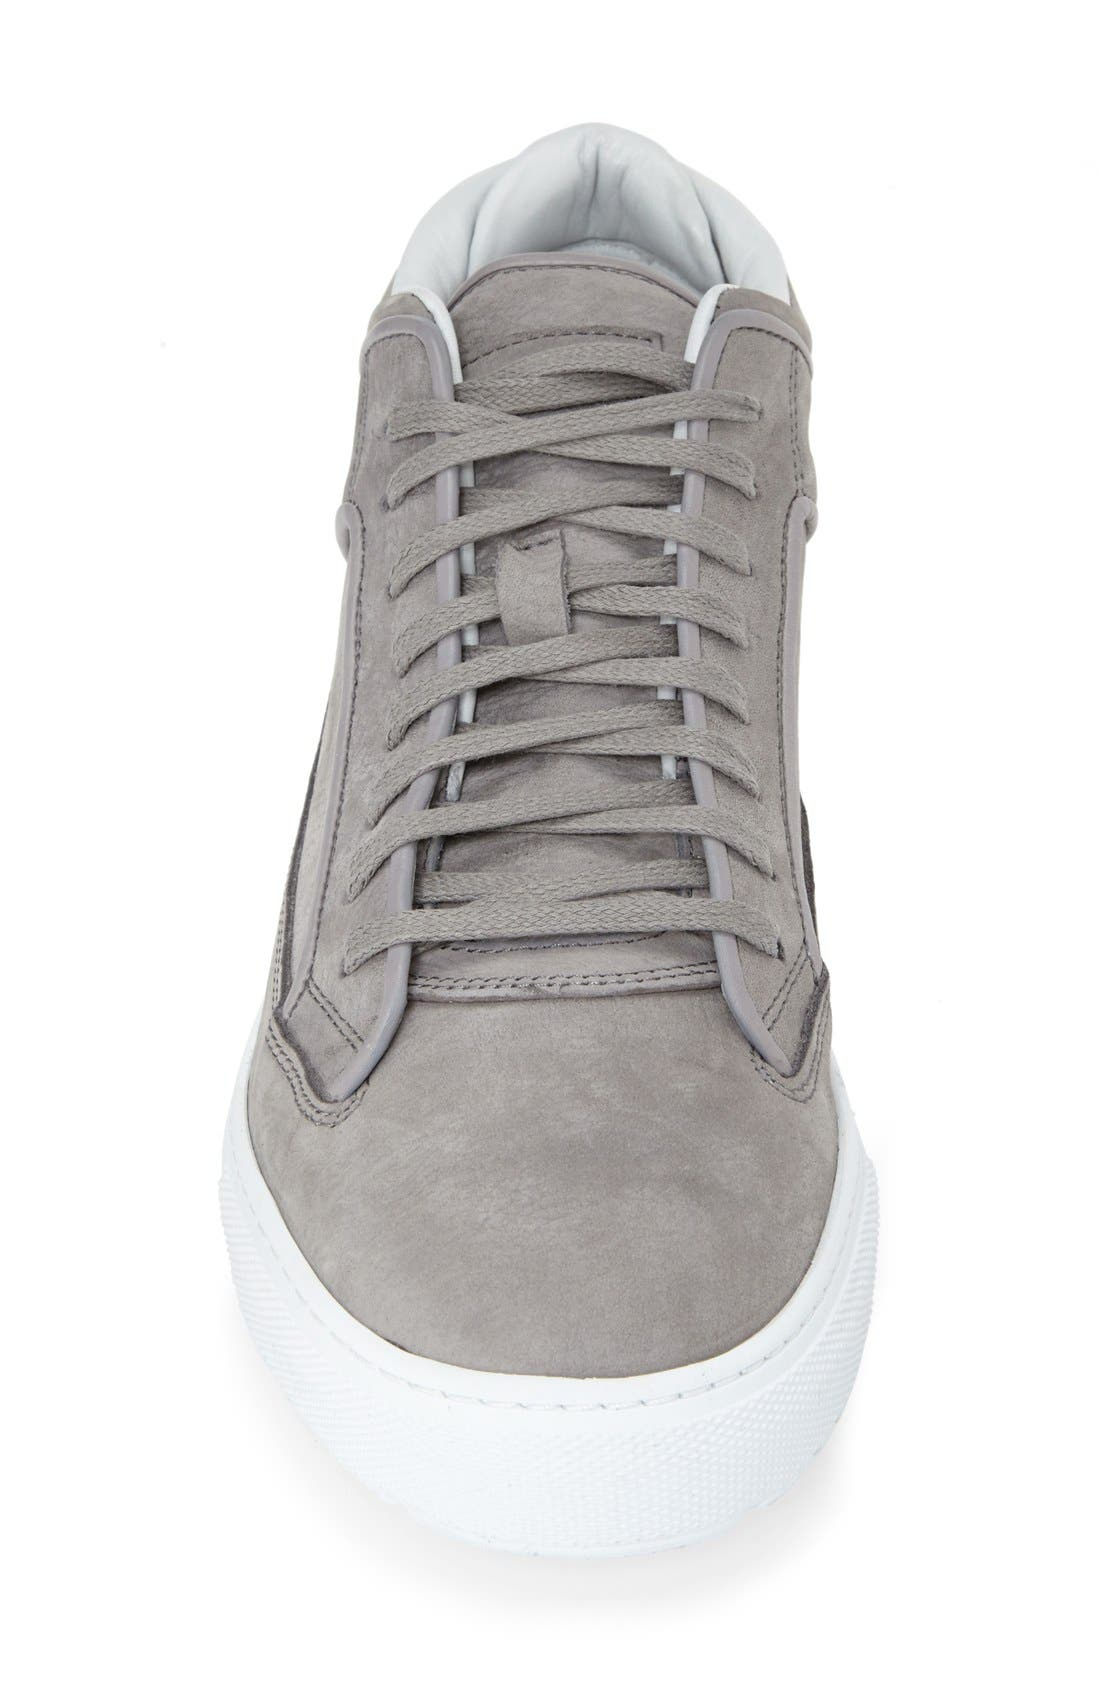 Leather Mid Top Sneaker,                             Alternate thumbnail 4, color,                             032